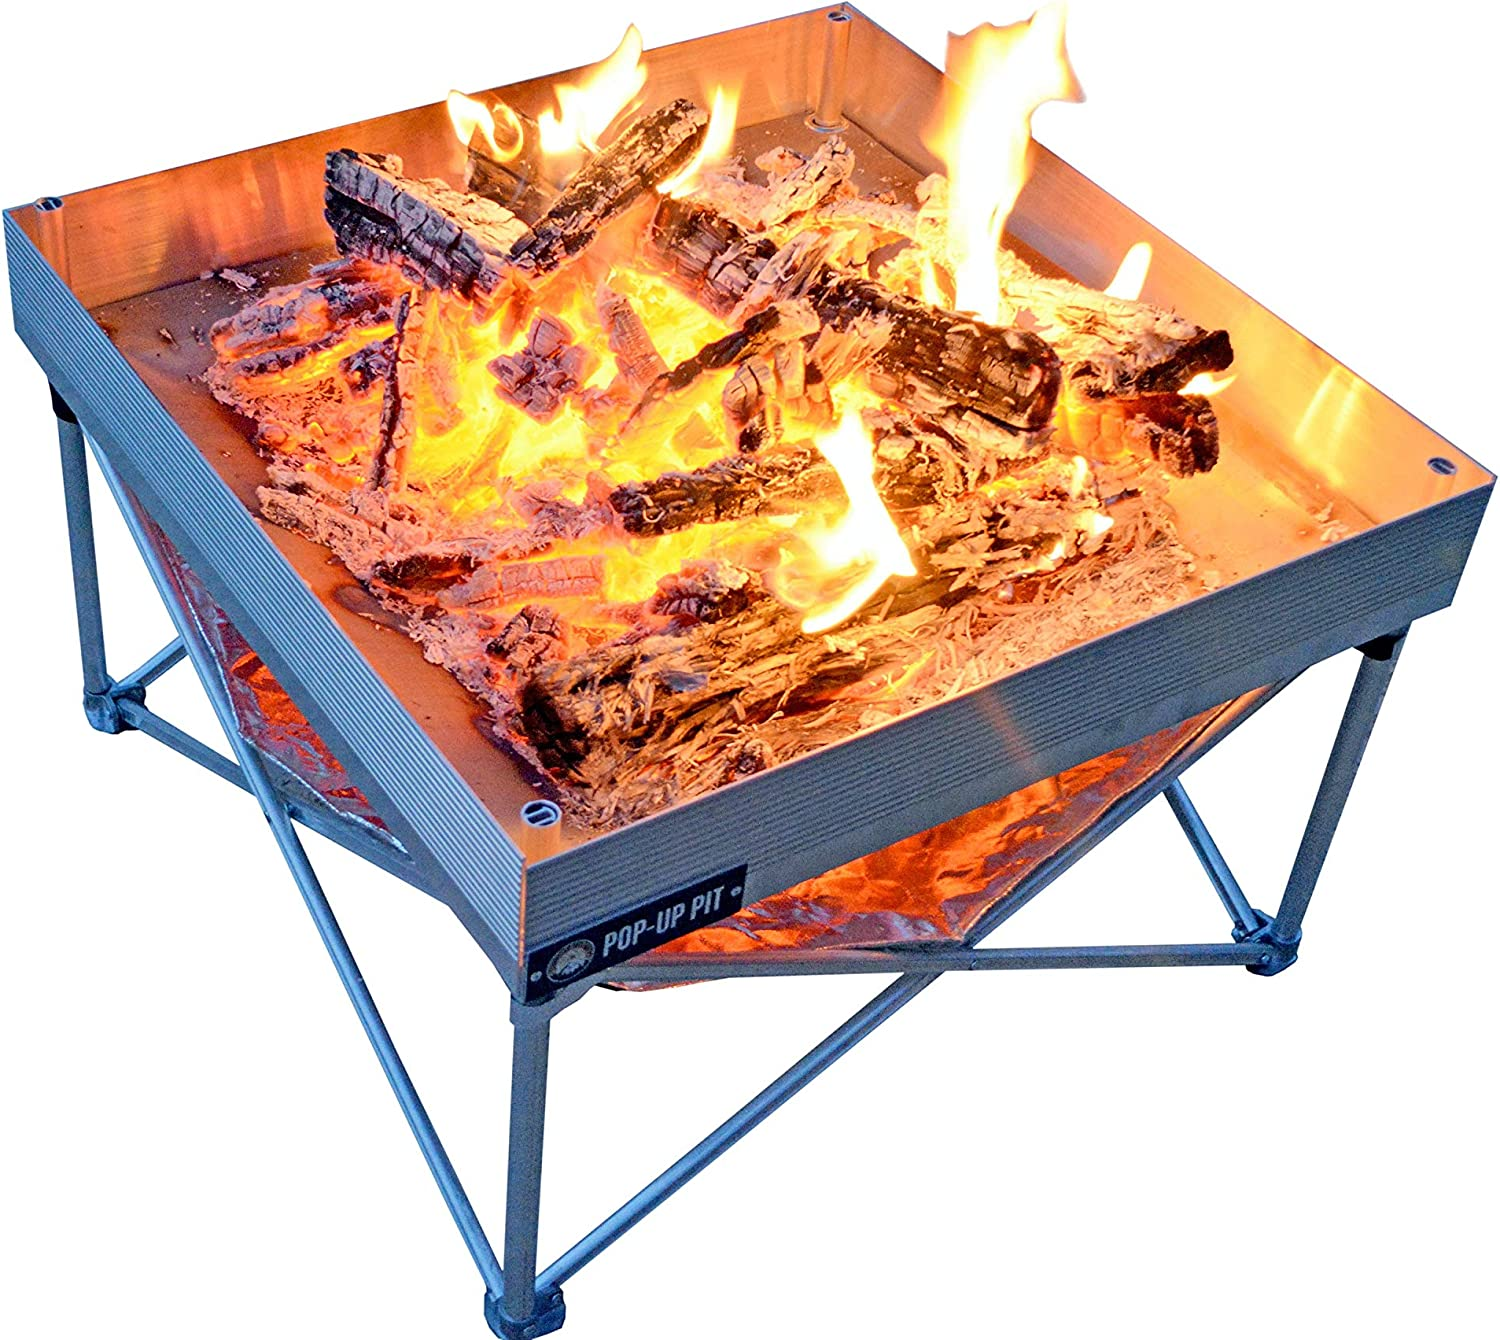 Campfire Defender Protect Preserve Pop-Up Fire Pit Portable and Lightweight Fullsize 24 Inch Never Rust FirePit Included Heat Shield for Leave No Trace Fires Pop-Up Fire Pit Heat Shield